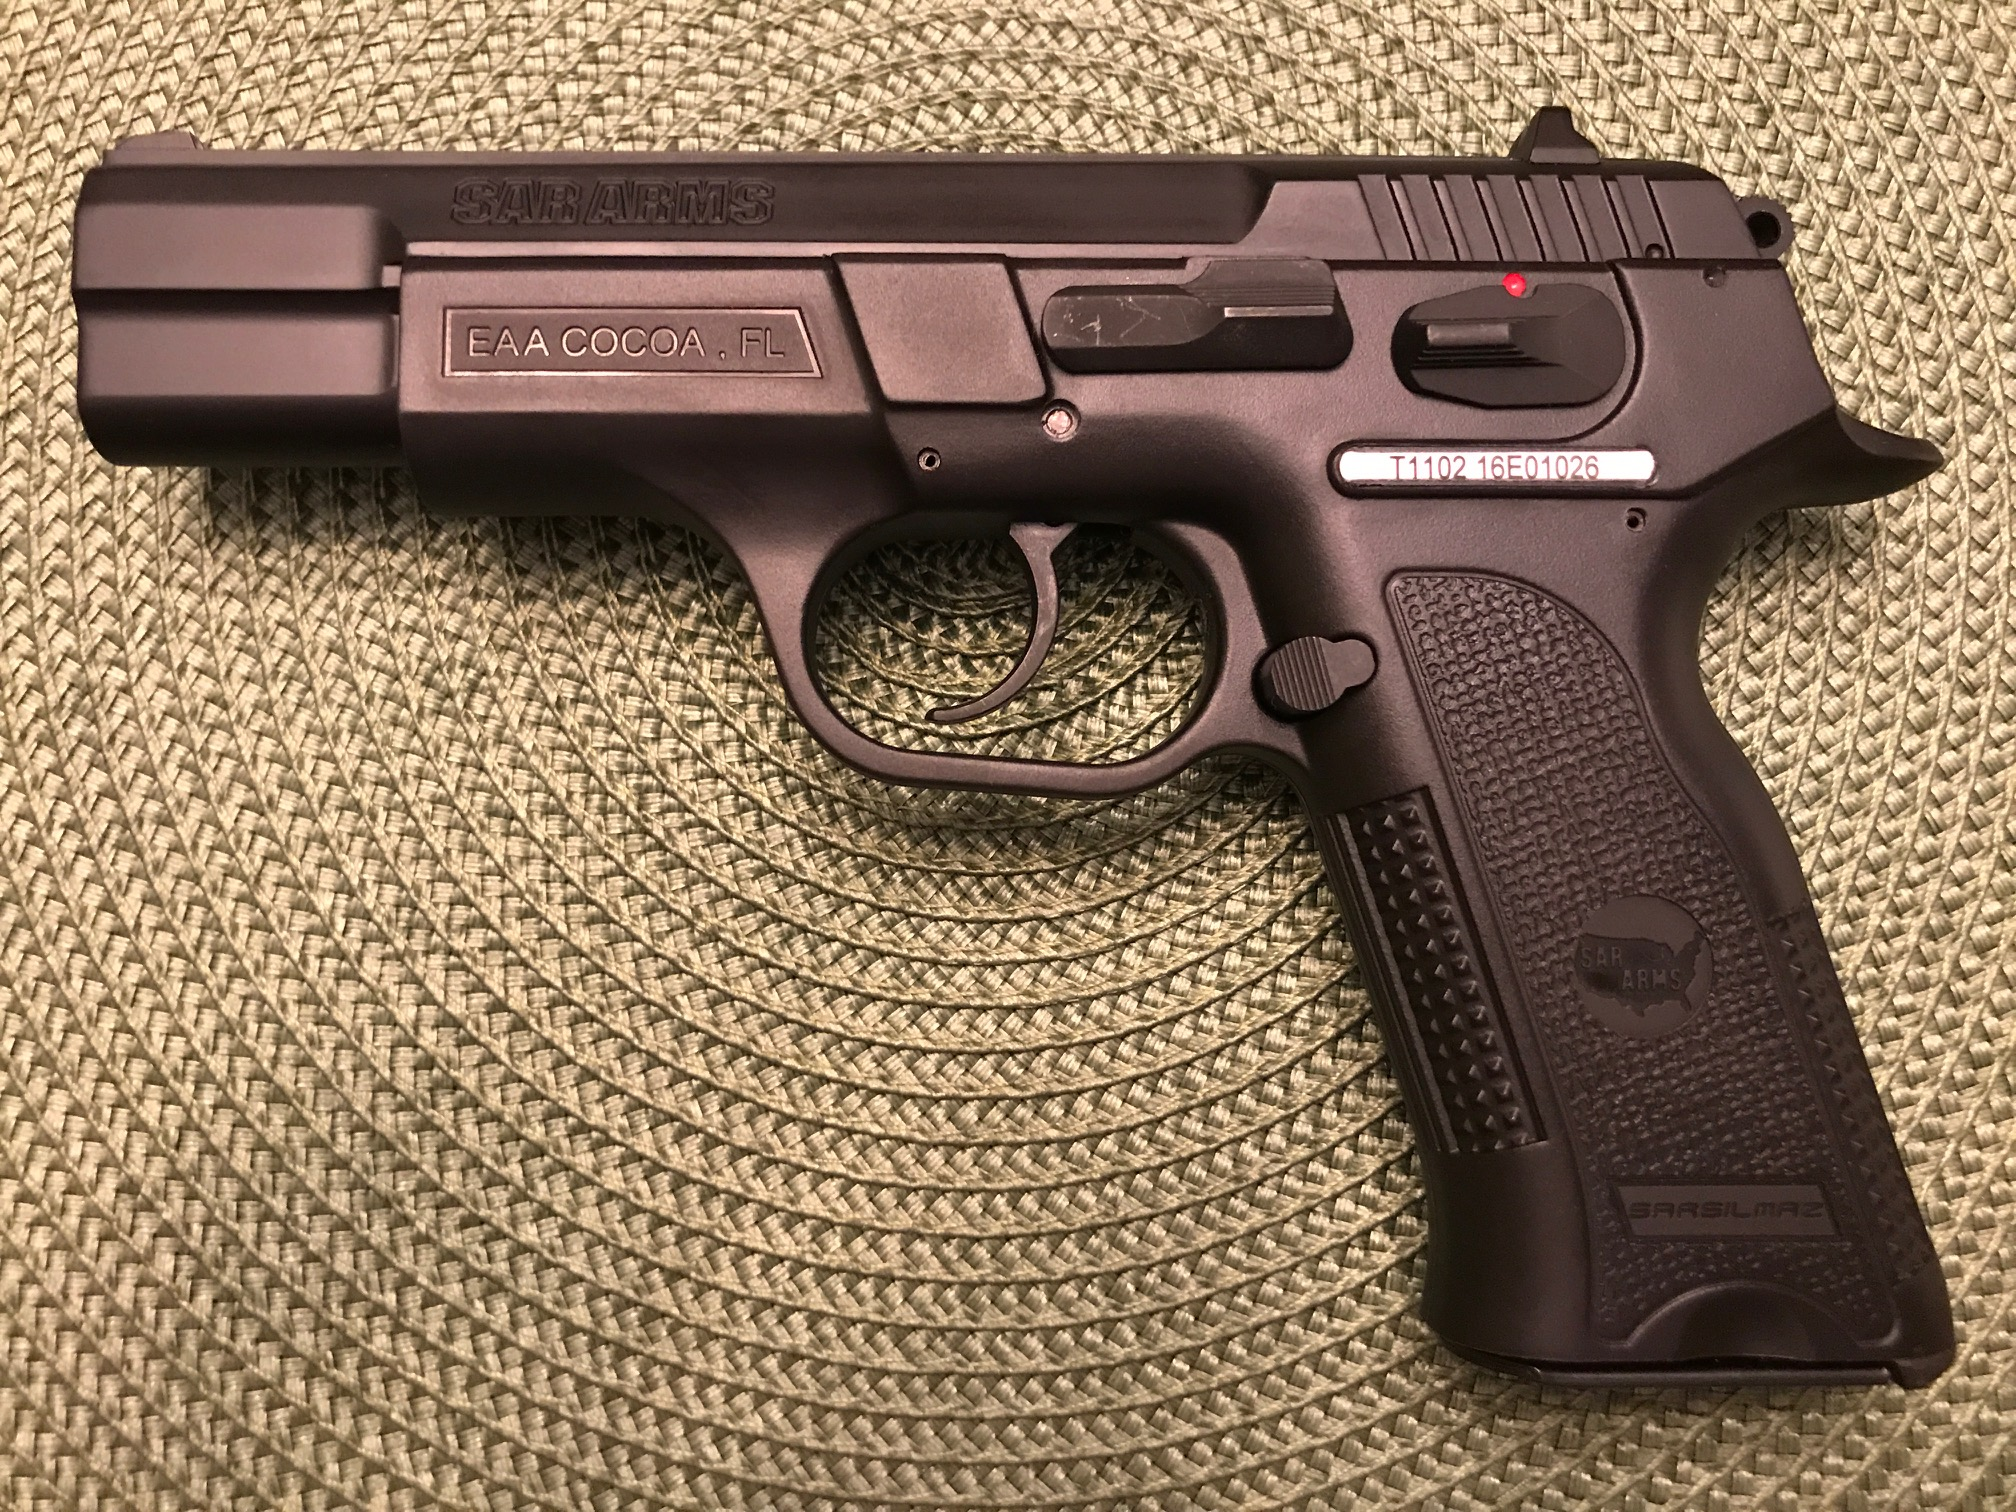 SAR B6P 9mm (Auction ID: 11501129, End Time : May  17, 2018